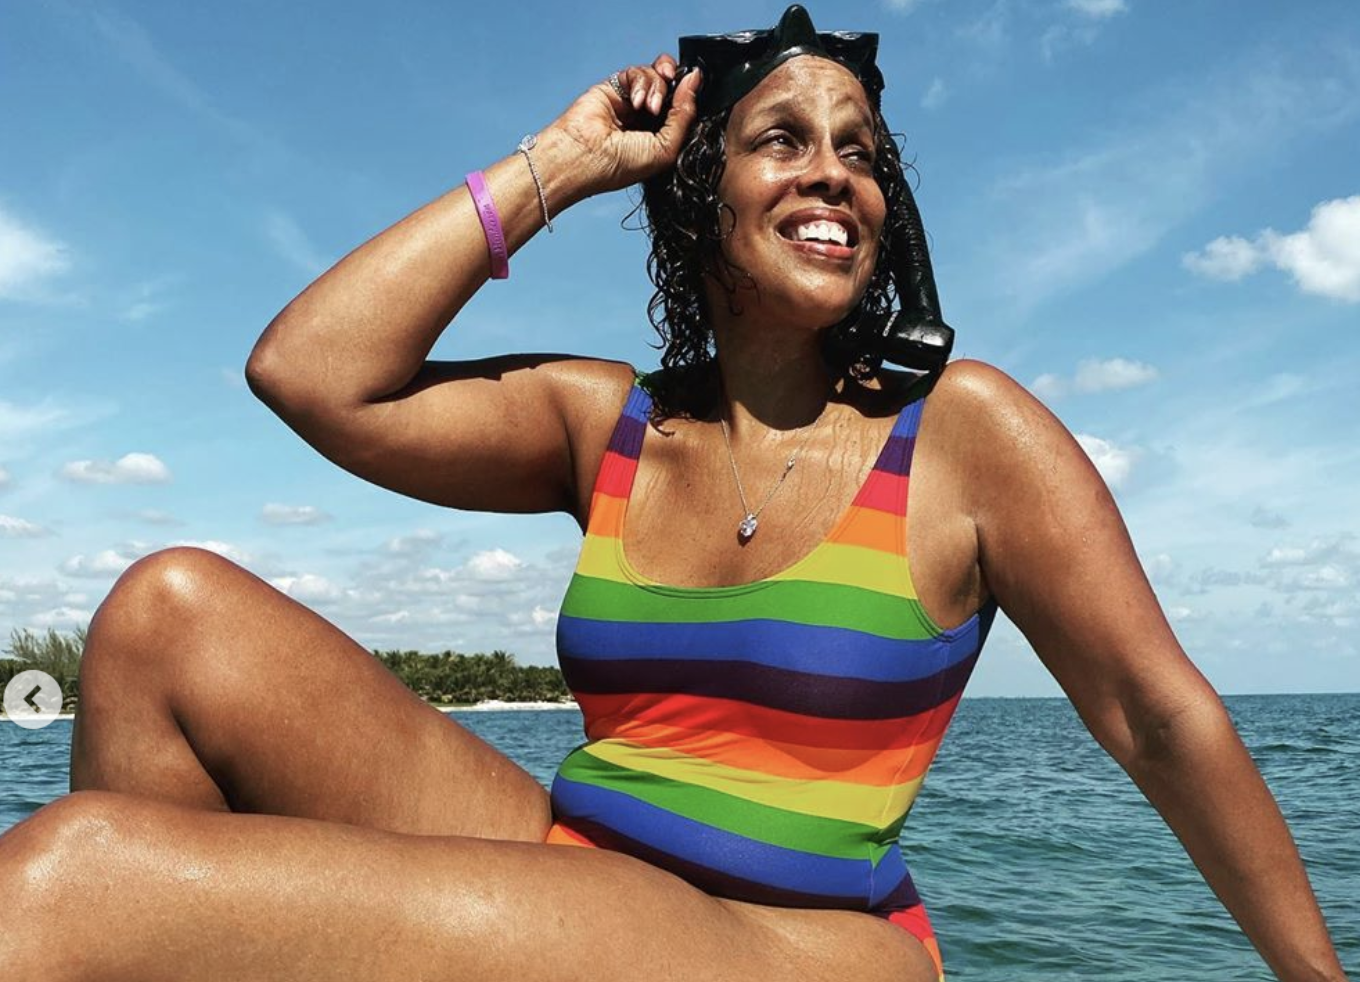 Gayle King 64 Shows Off Her Curves In Swimsuit Photos No Photoshopping Allowed